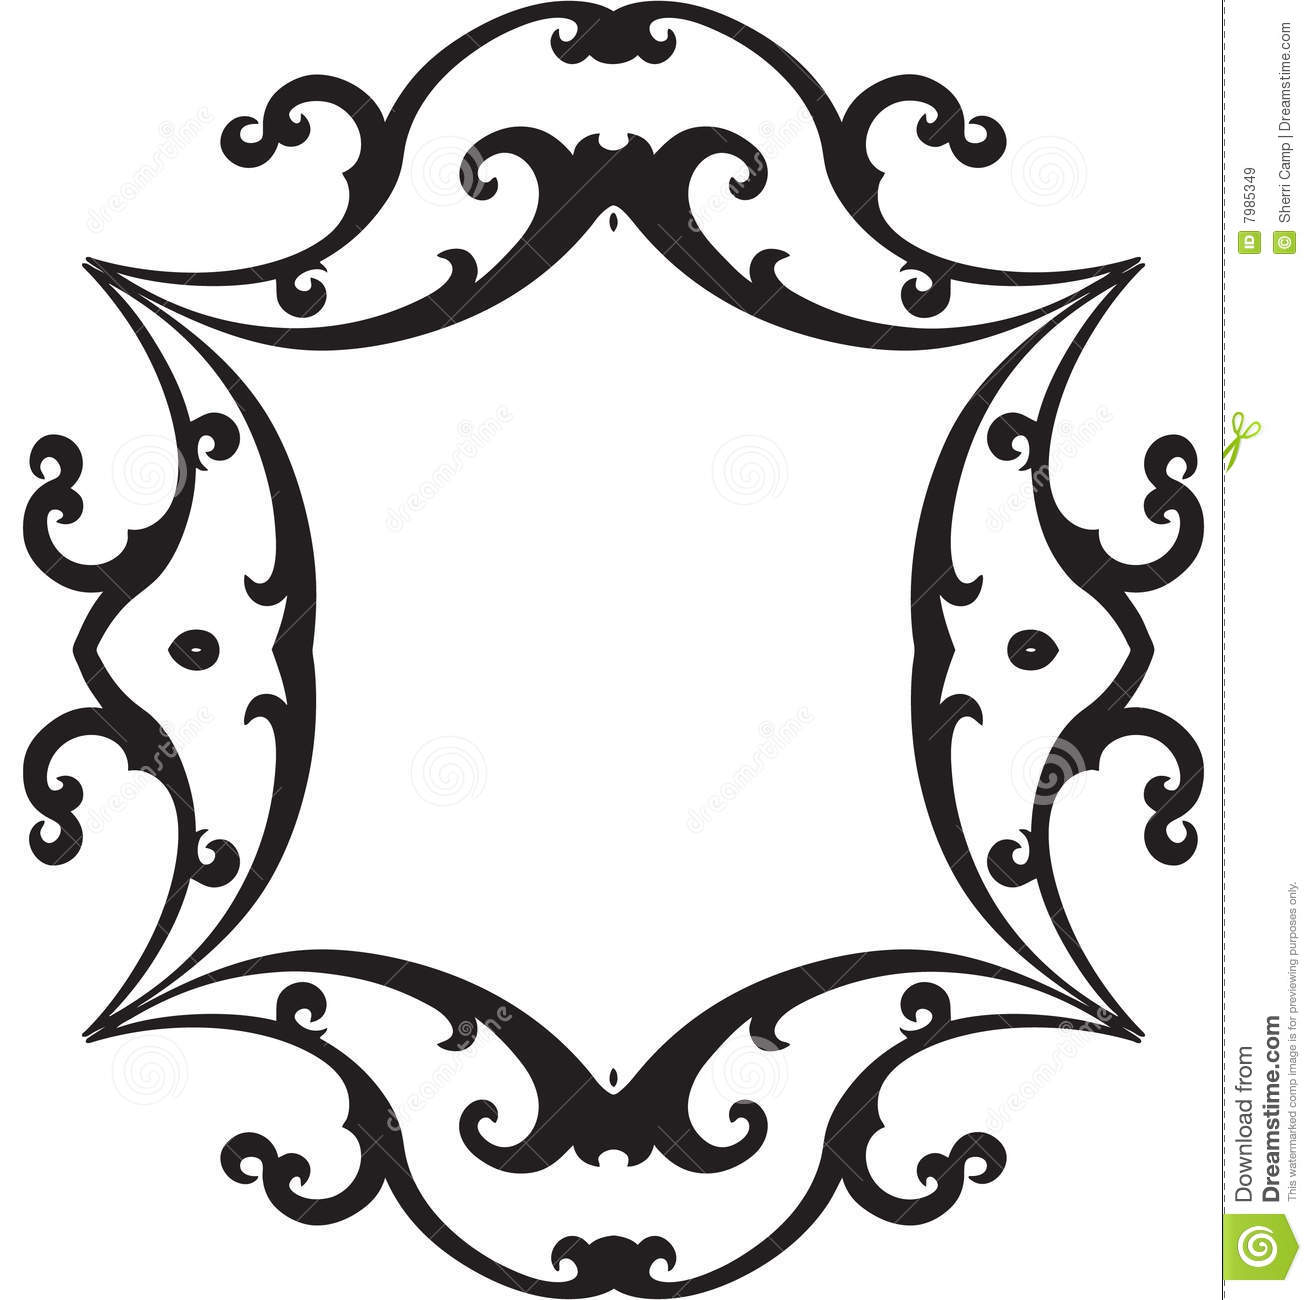 Frame clipart scrollwork Scroll Border Images Art scroll%20border%20clip%20art